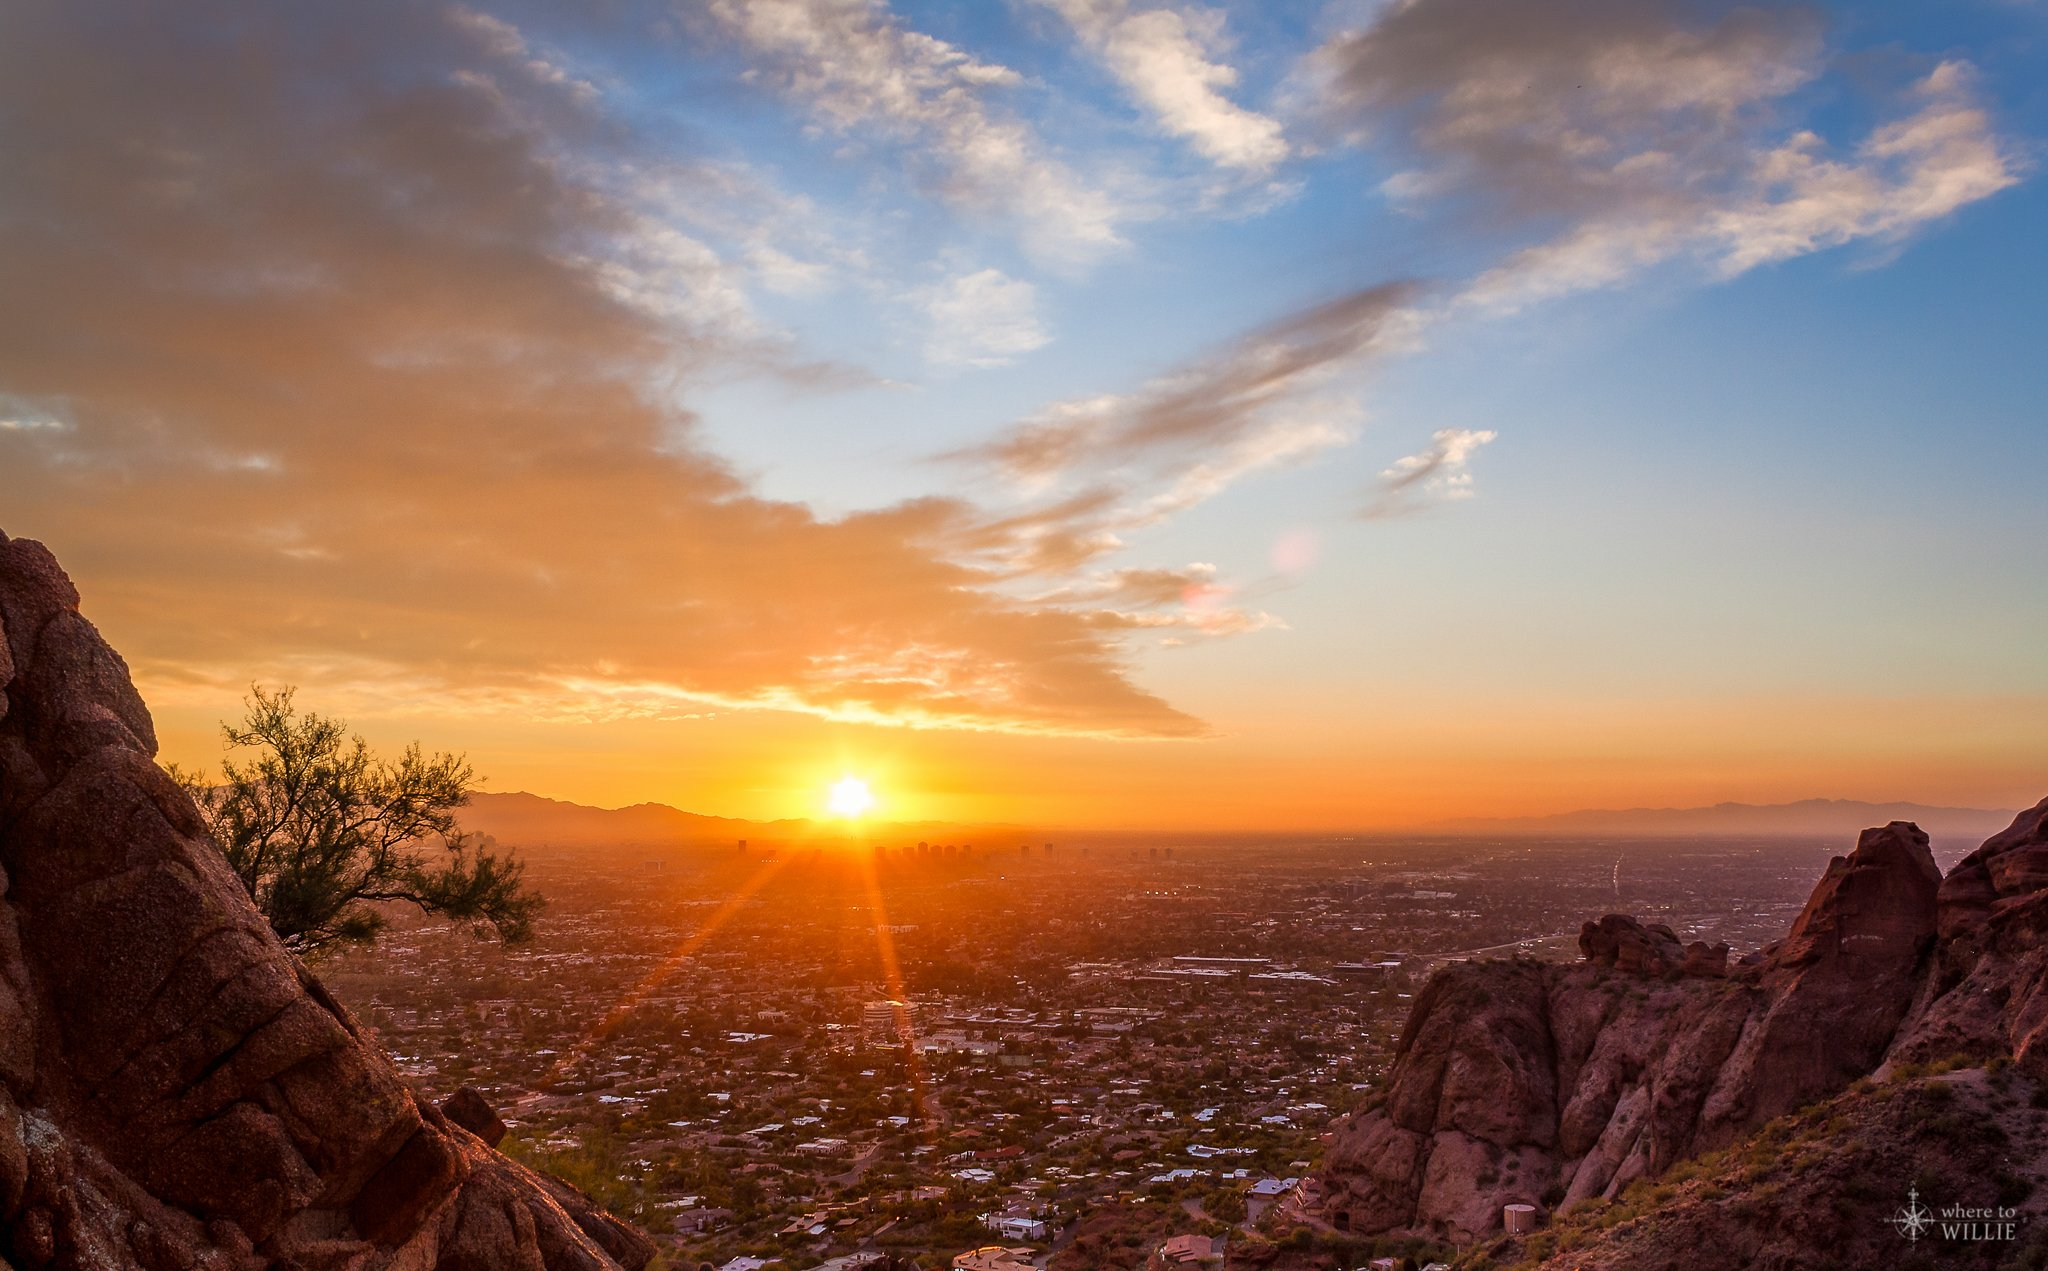 Sunset Burning Over Phoenix Camelback Mountain